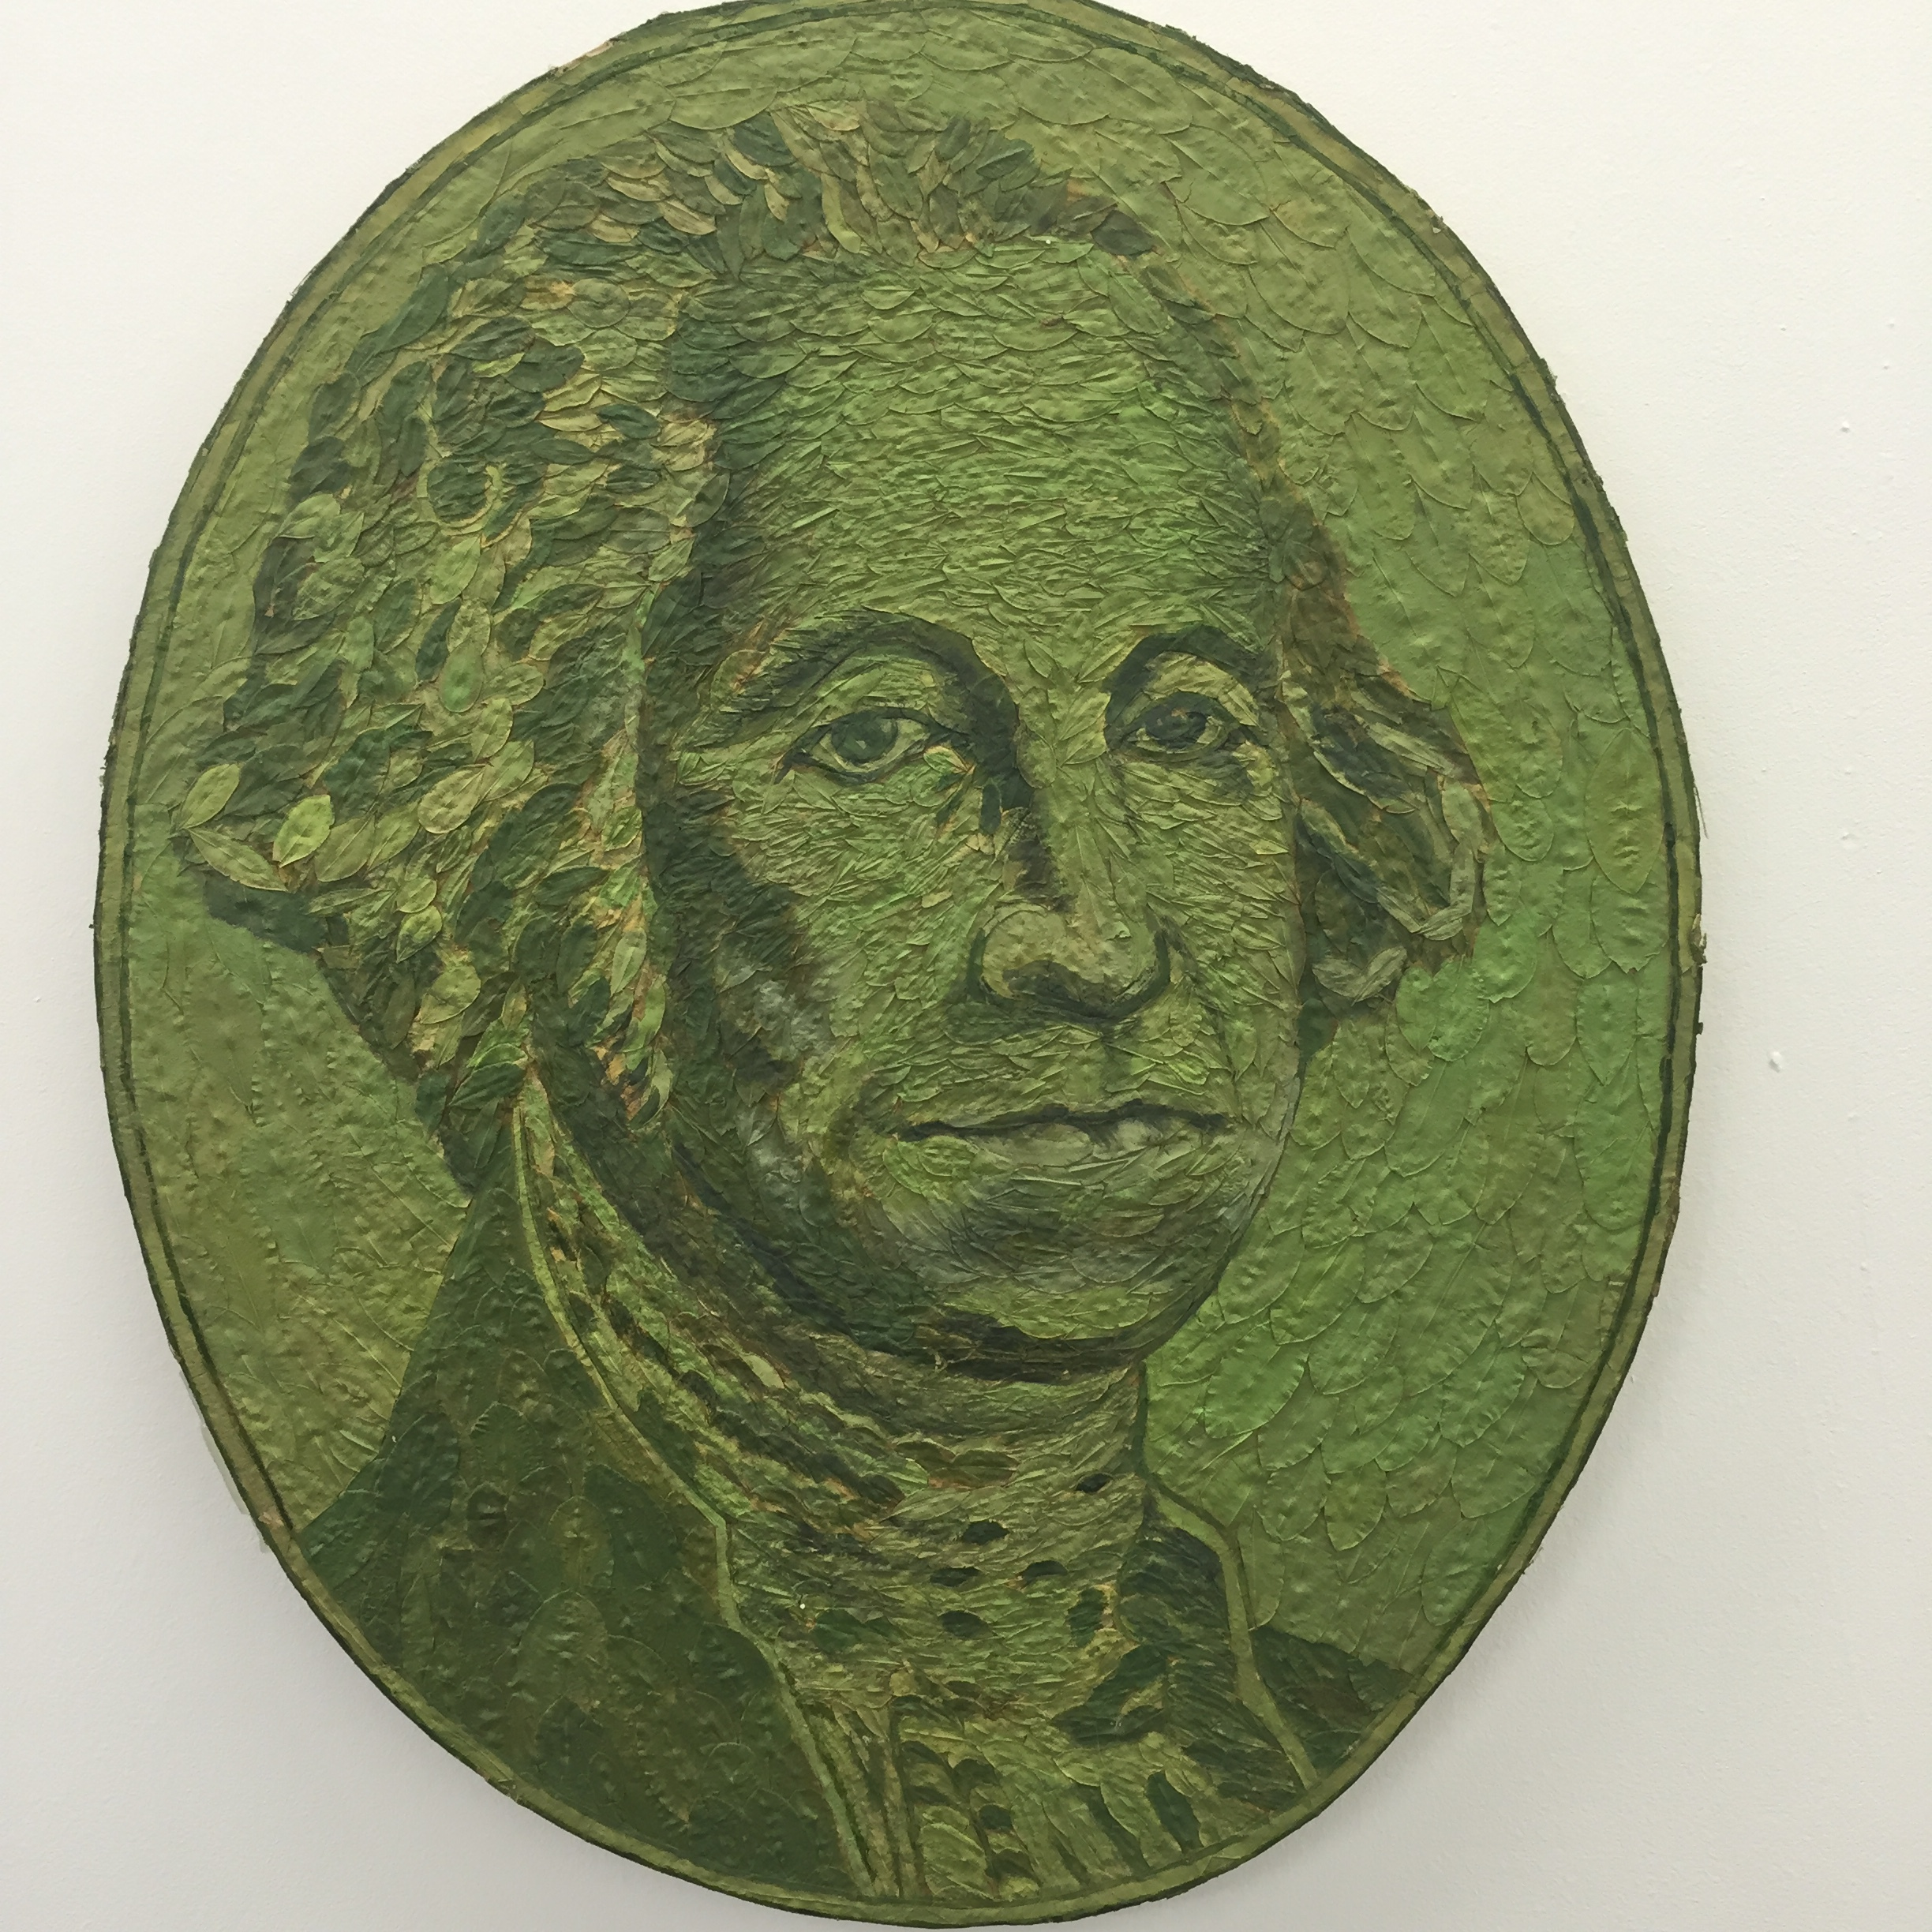 Series of Monetary related art using coca leaves as medium!